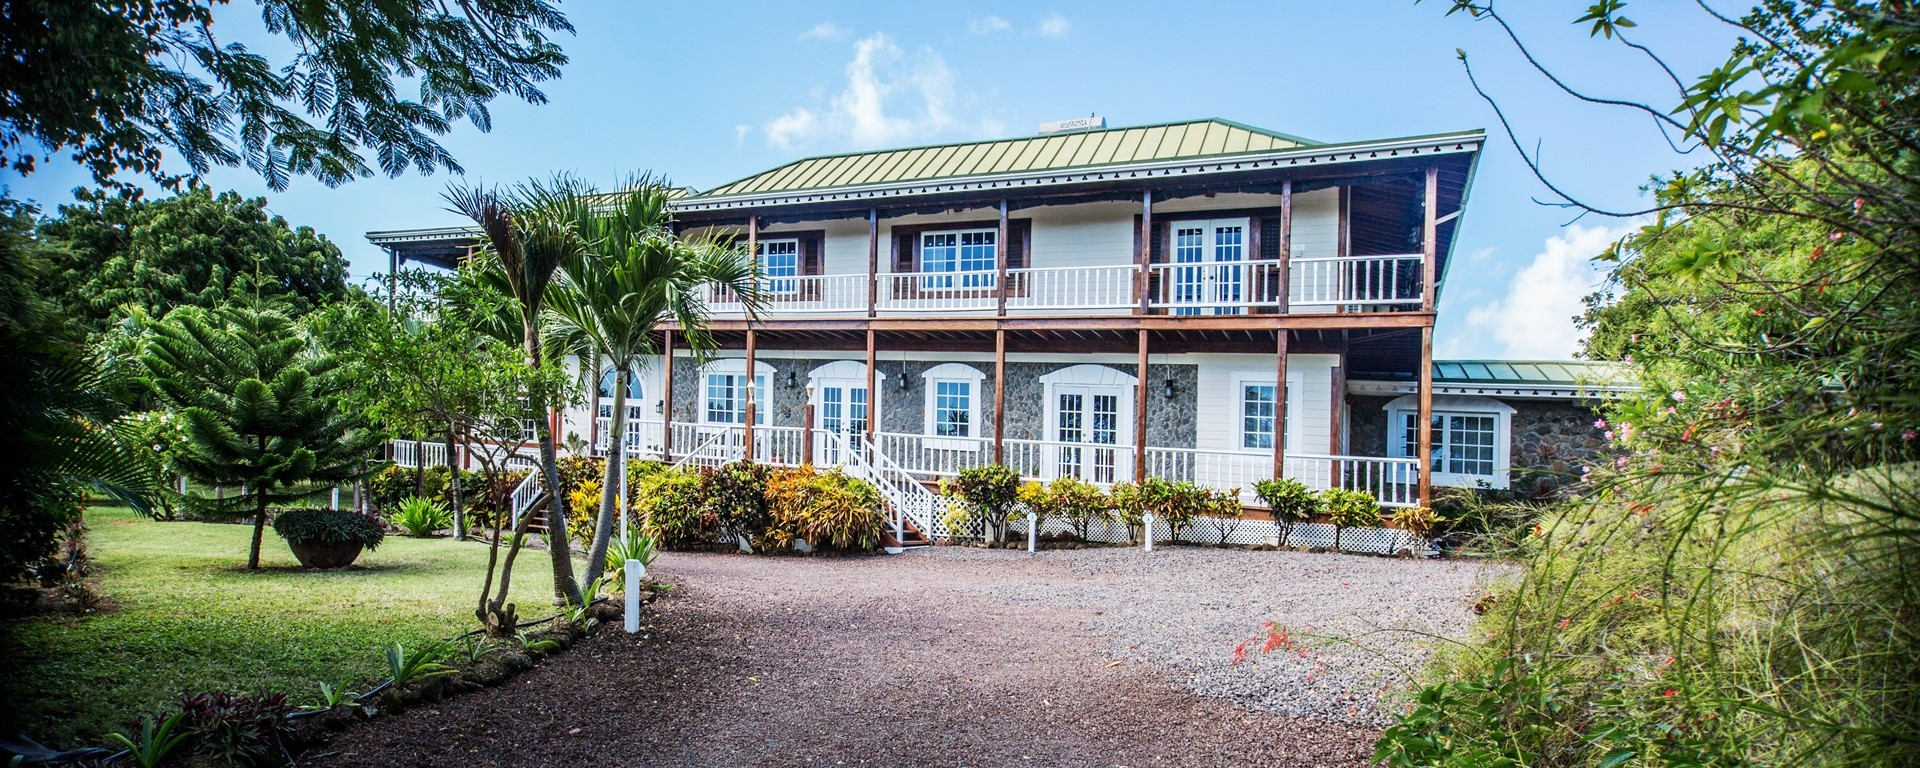 estate-house-grenada-caribbean-facade